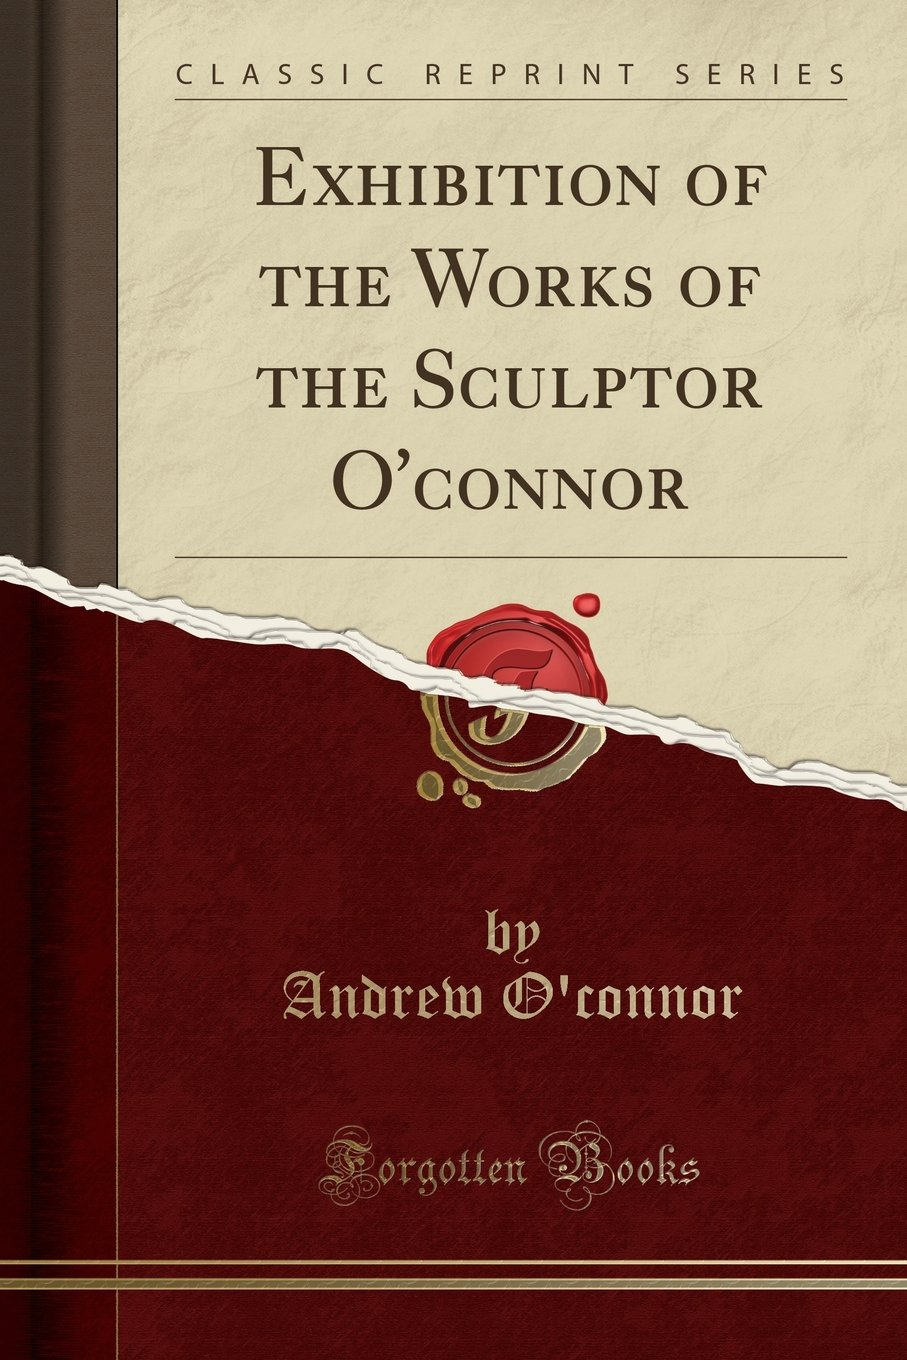 Exhibition of the Works of the Sculptor O'connor (Classic Reprint)